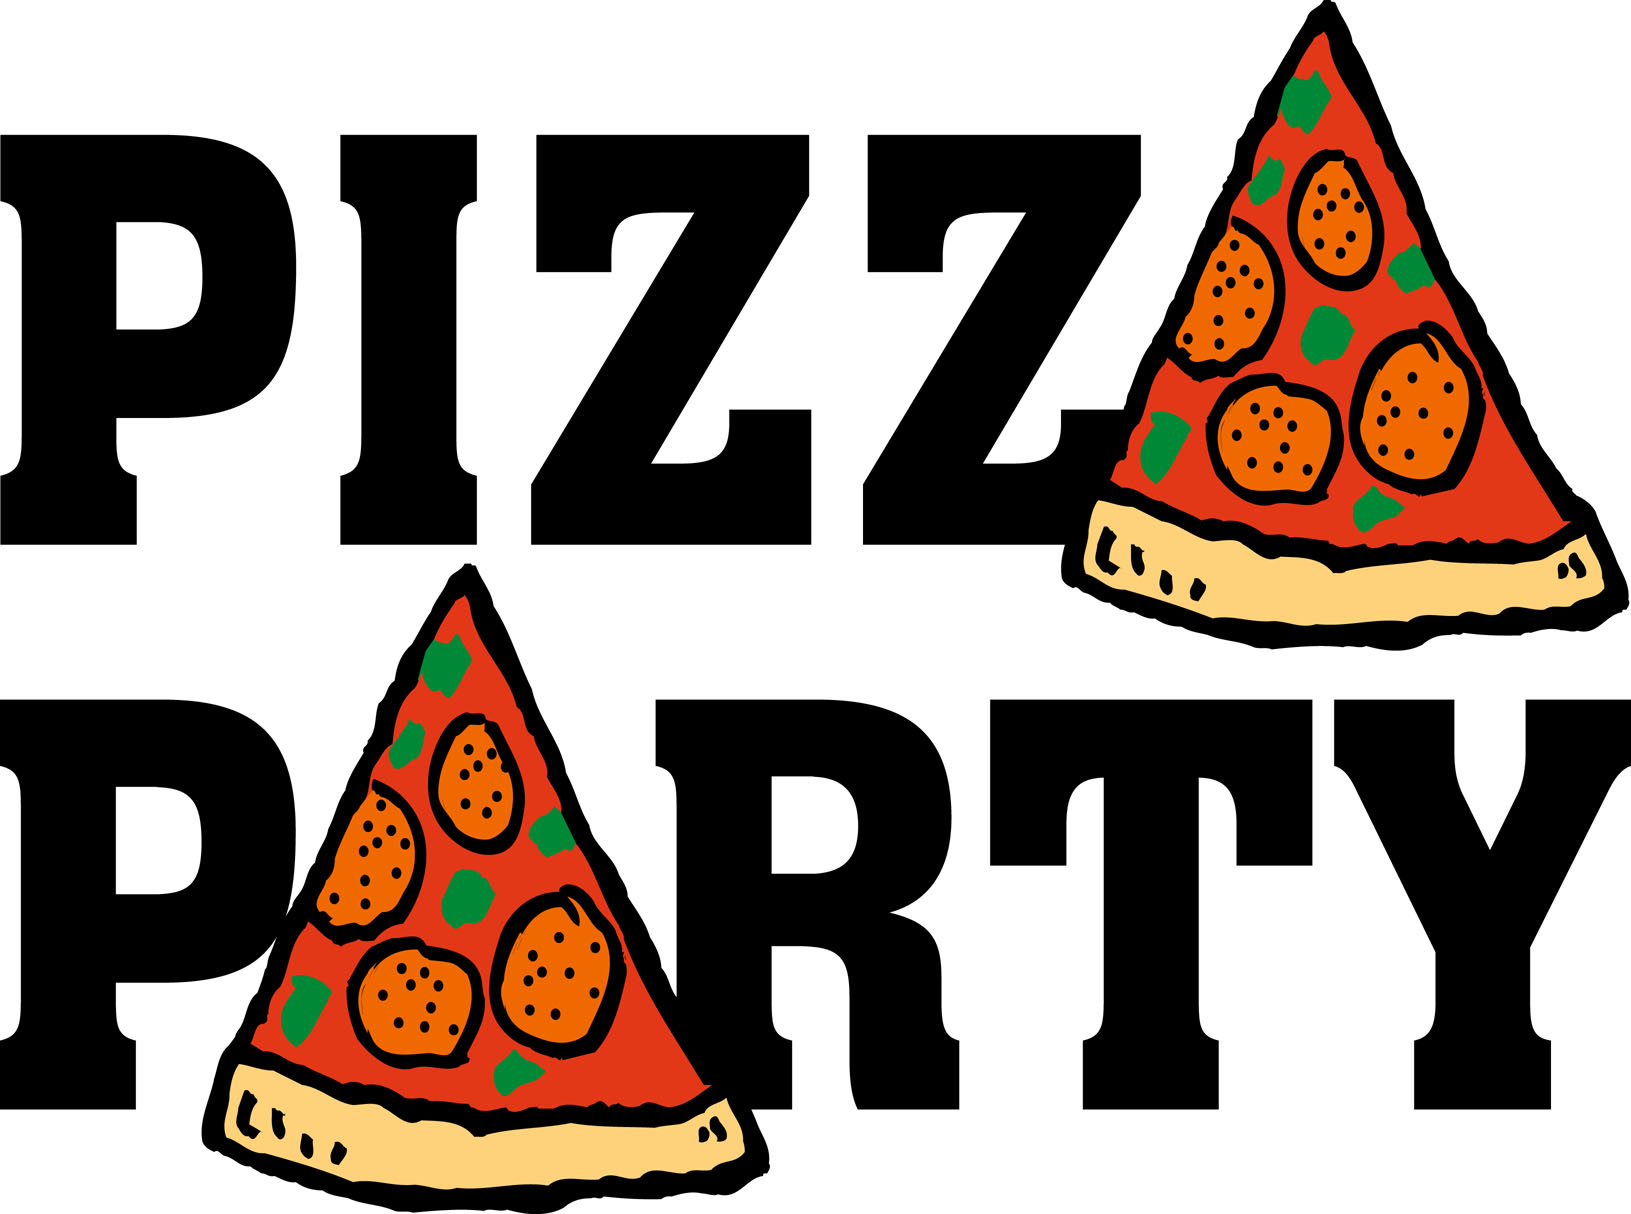 https://i0.wp.com/cornwallcurling.com/wp-content/uploads/PizzaParty.jpg